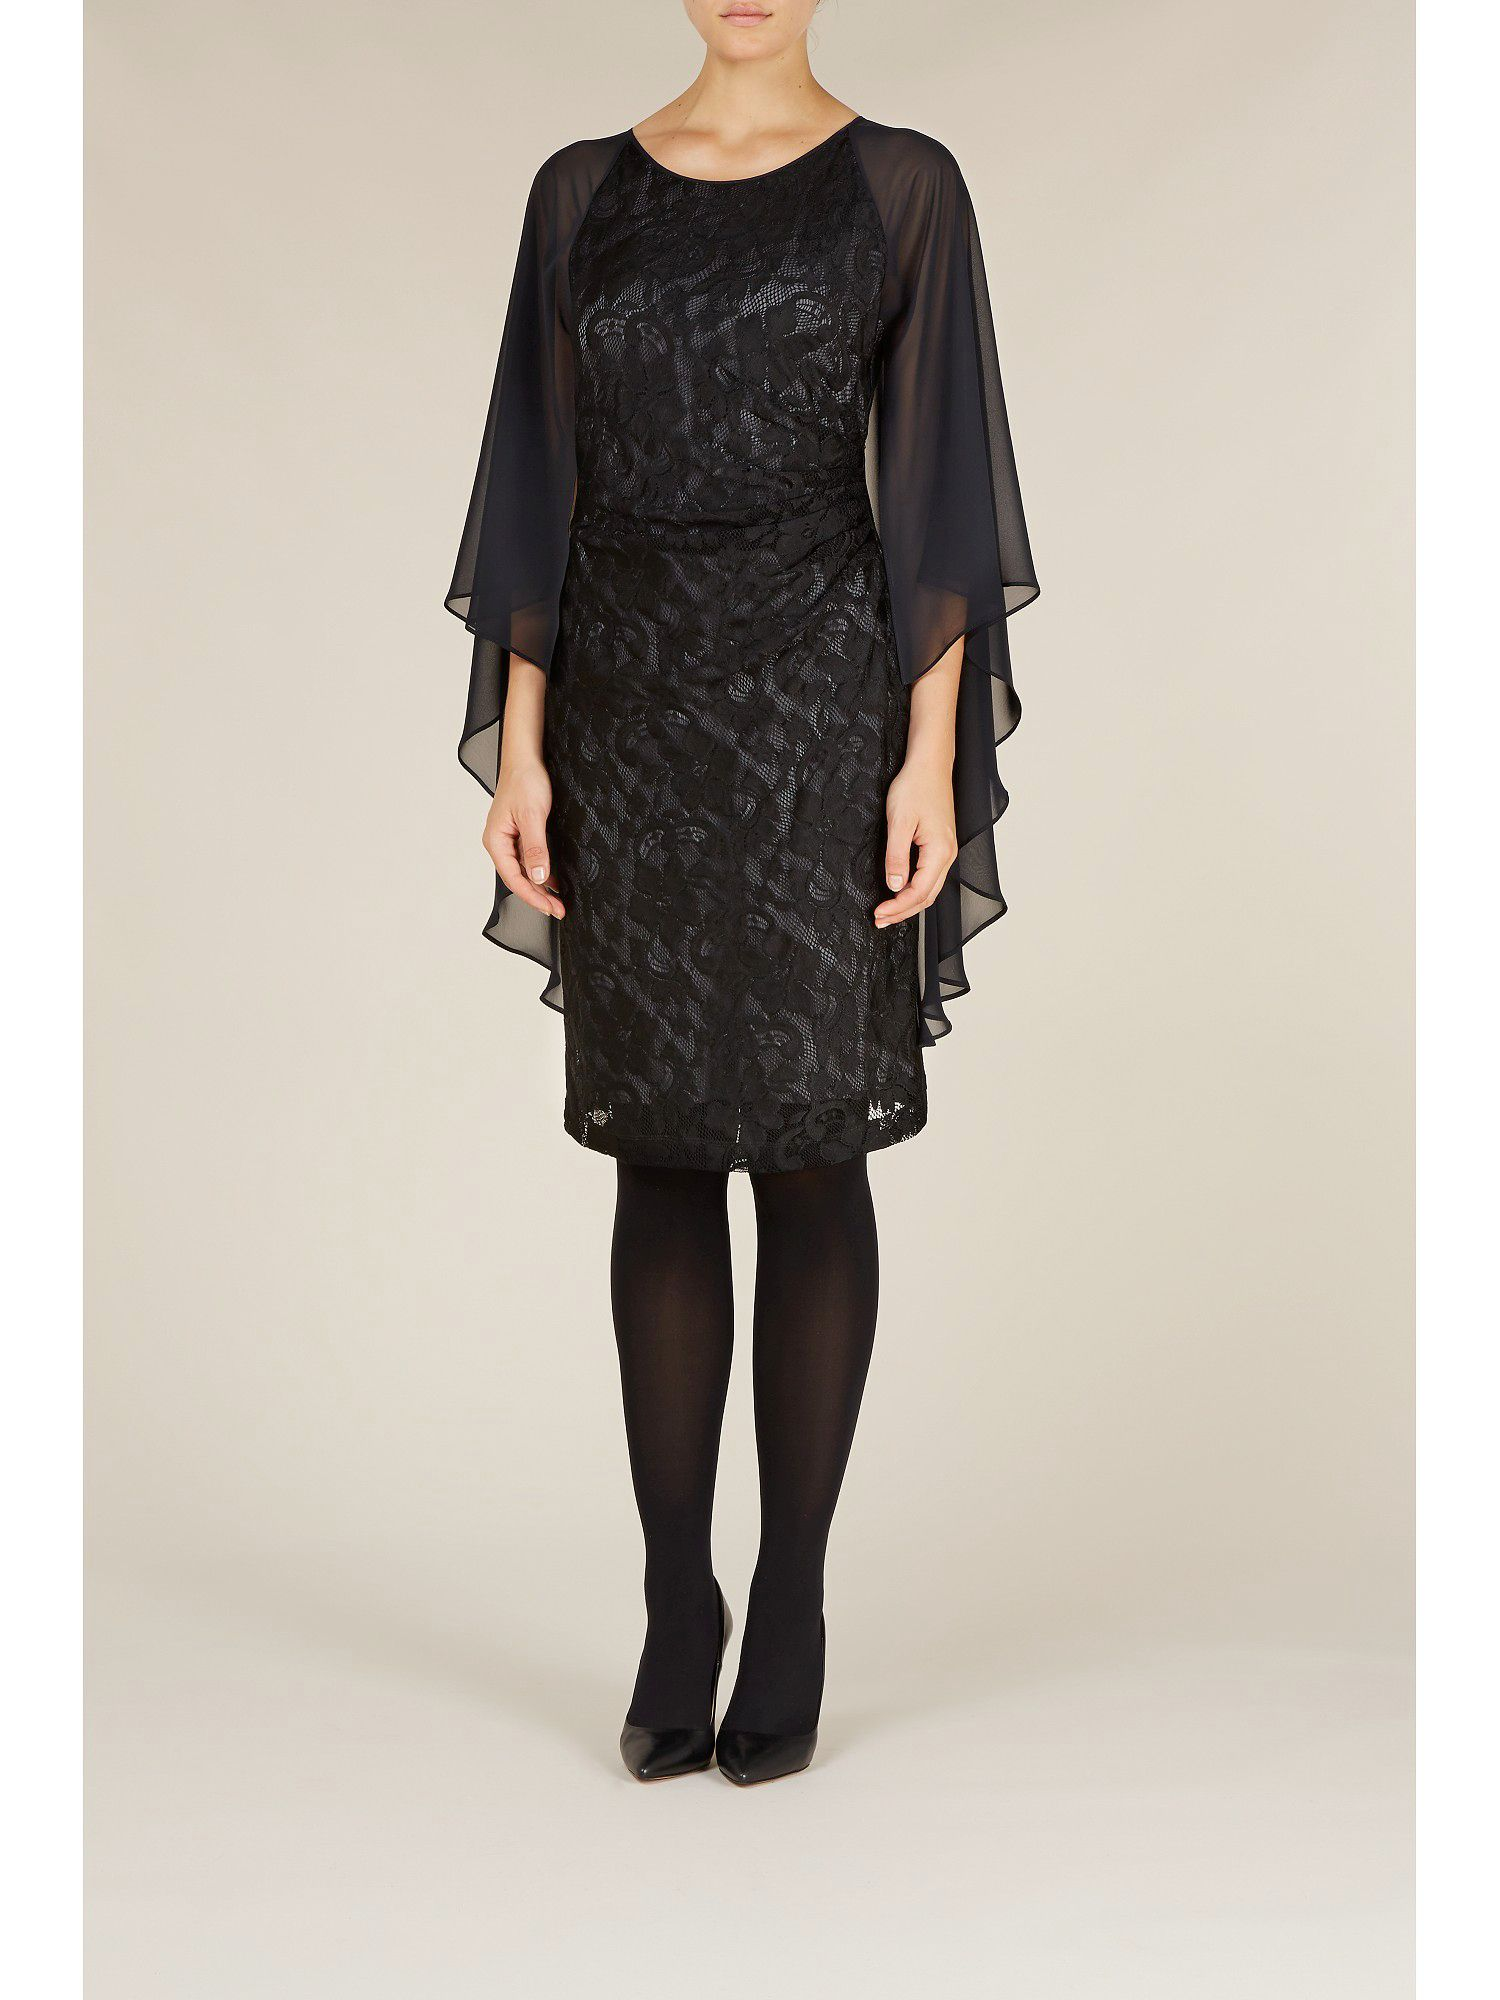 Black lace angel sleeve dress